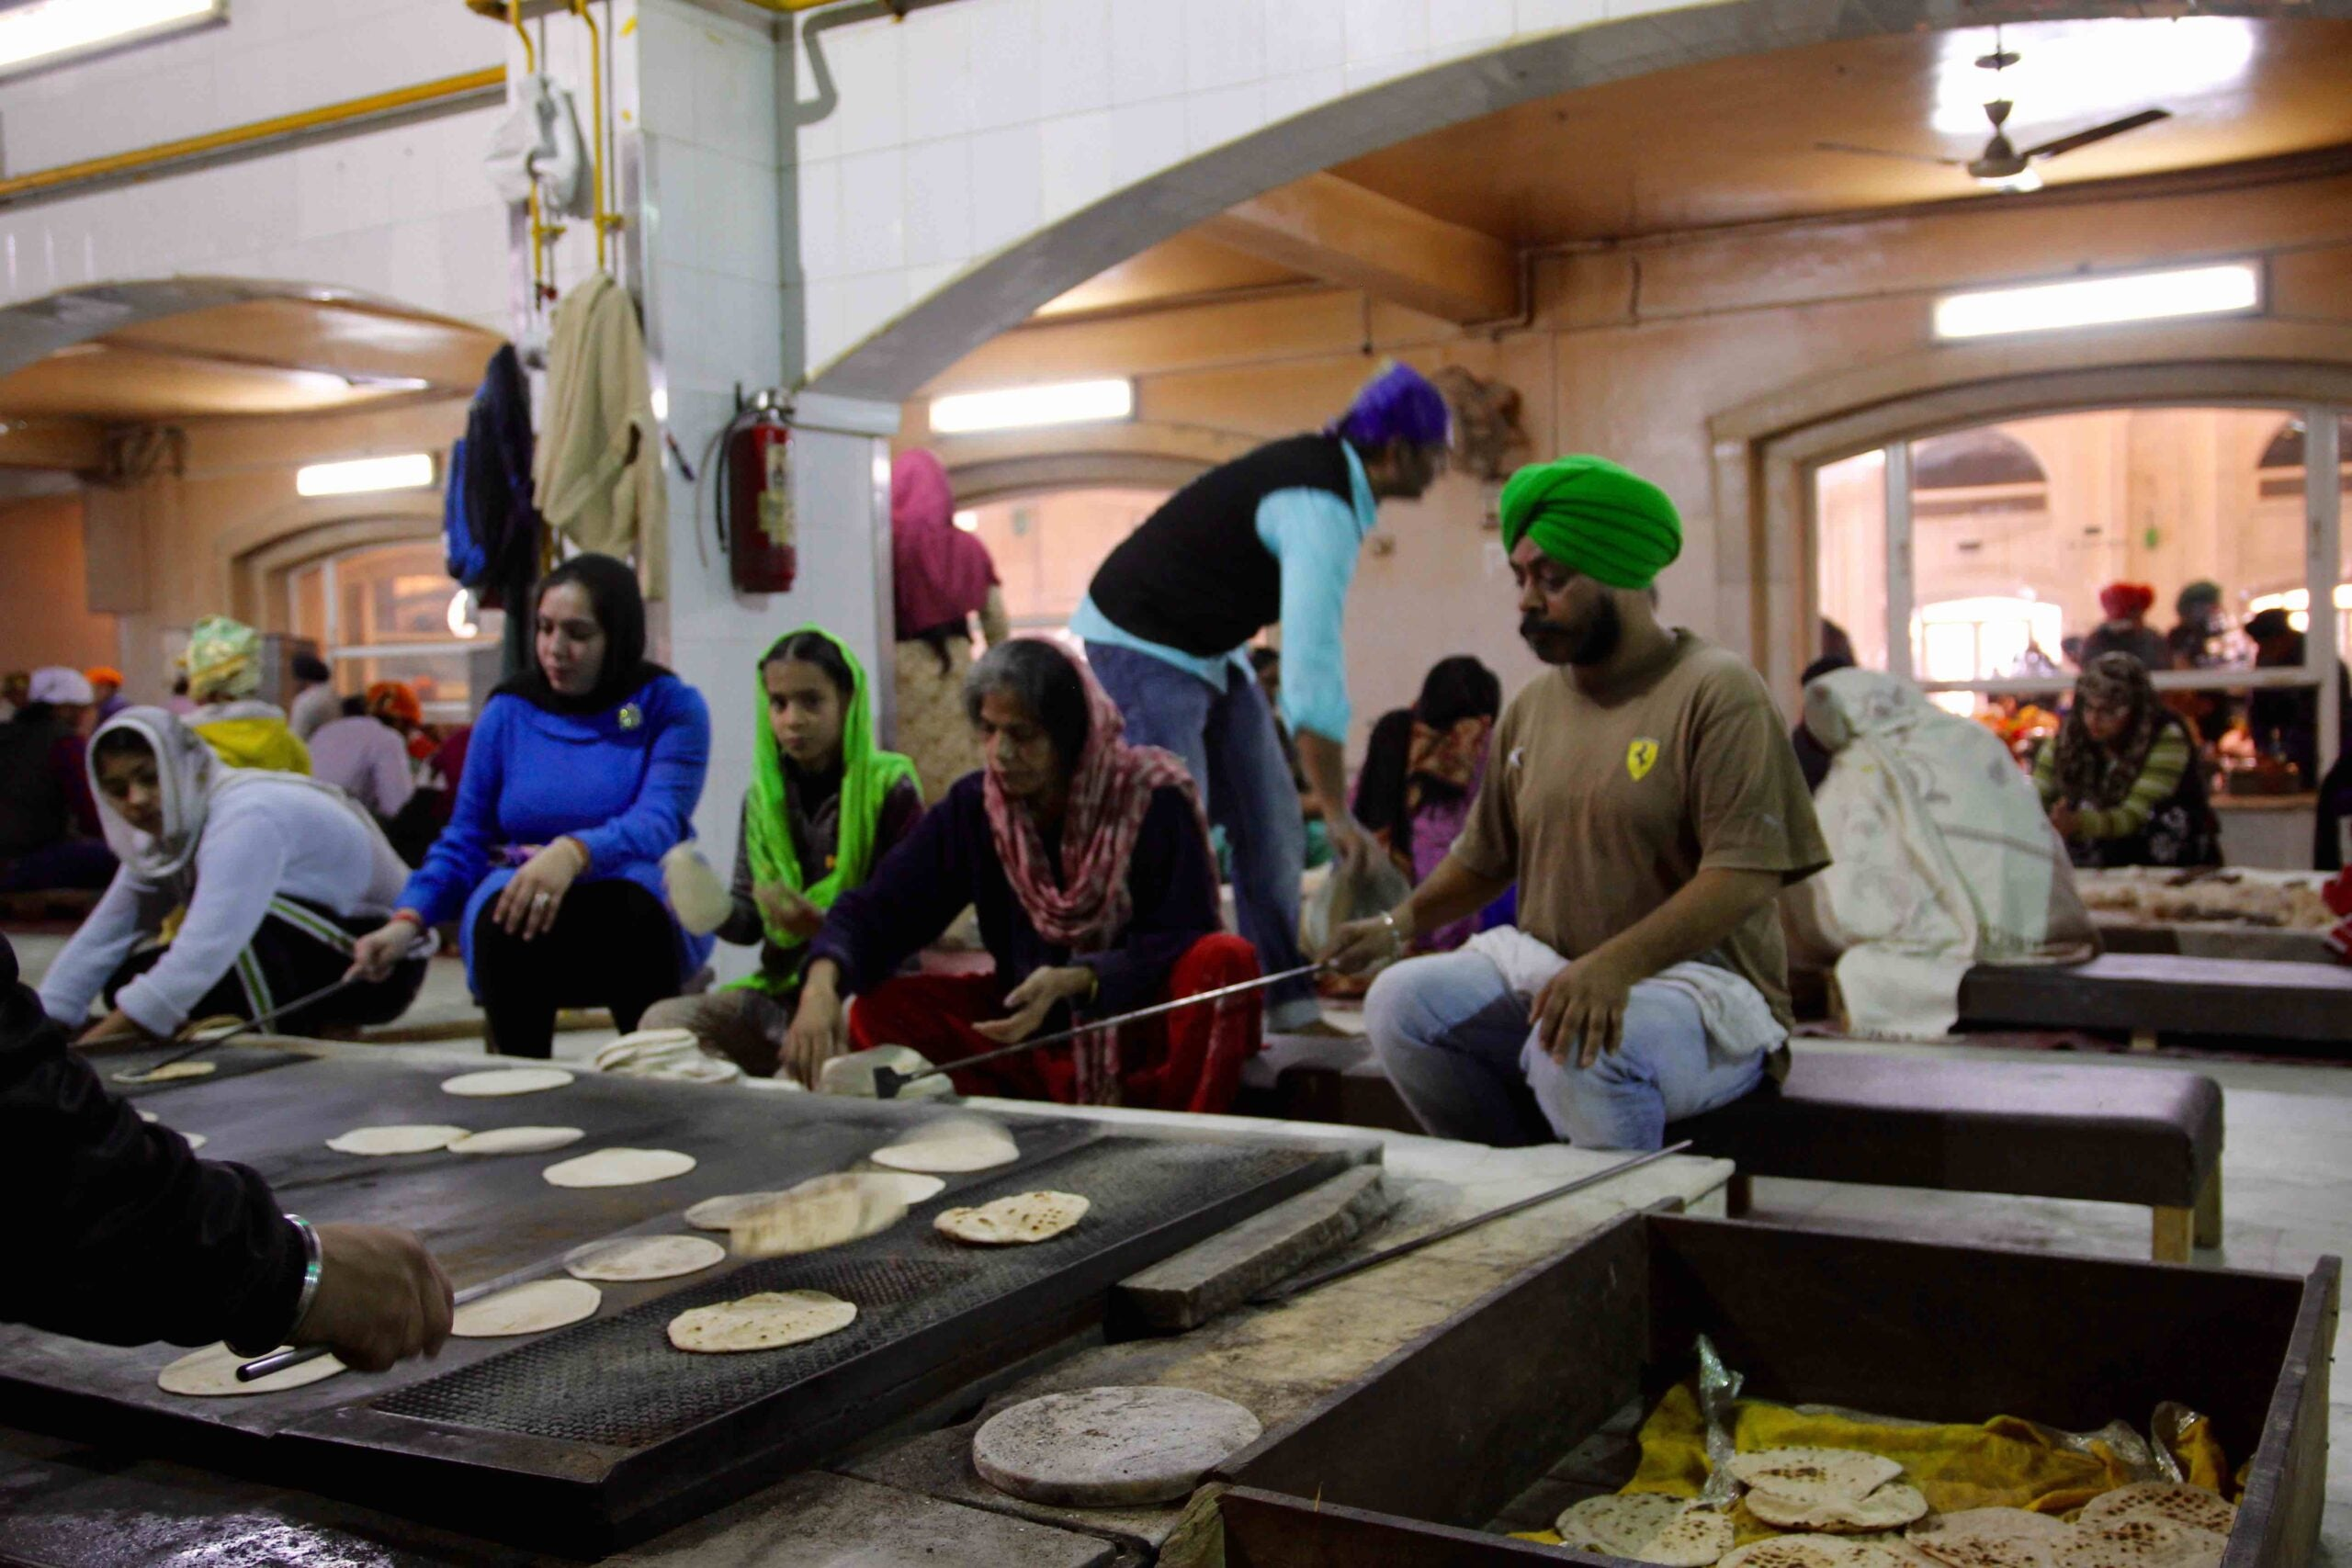 Inside the Sikh Temple Serving 10,000 Free Meals a Day